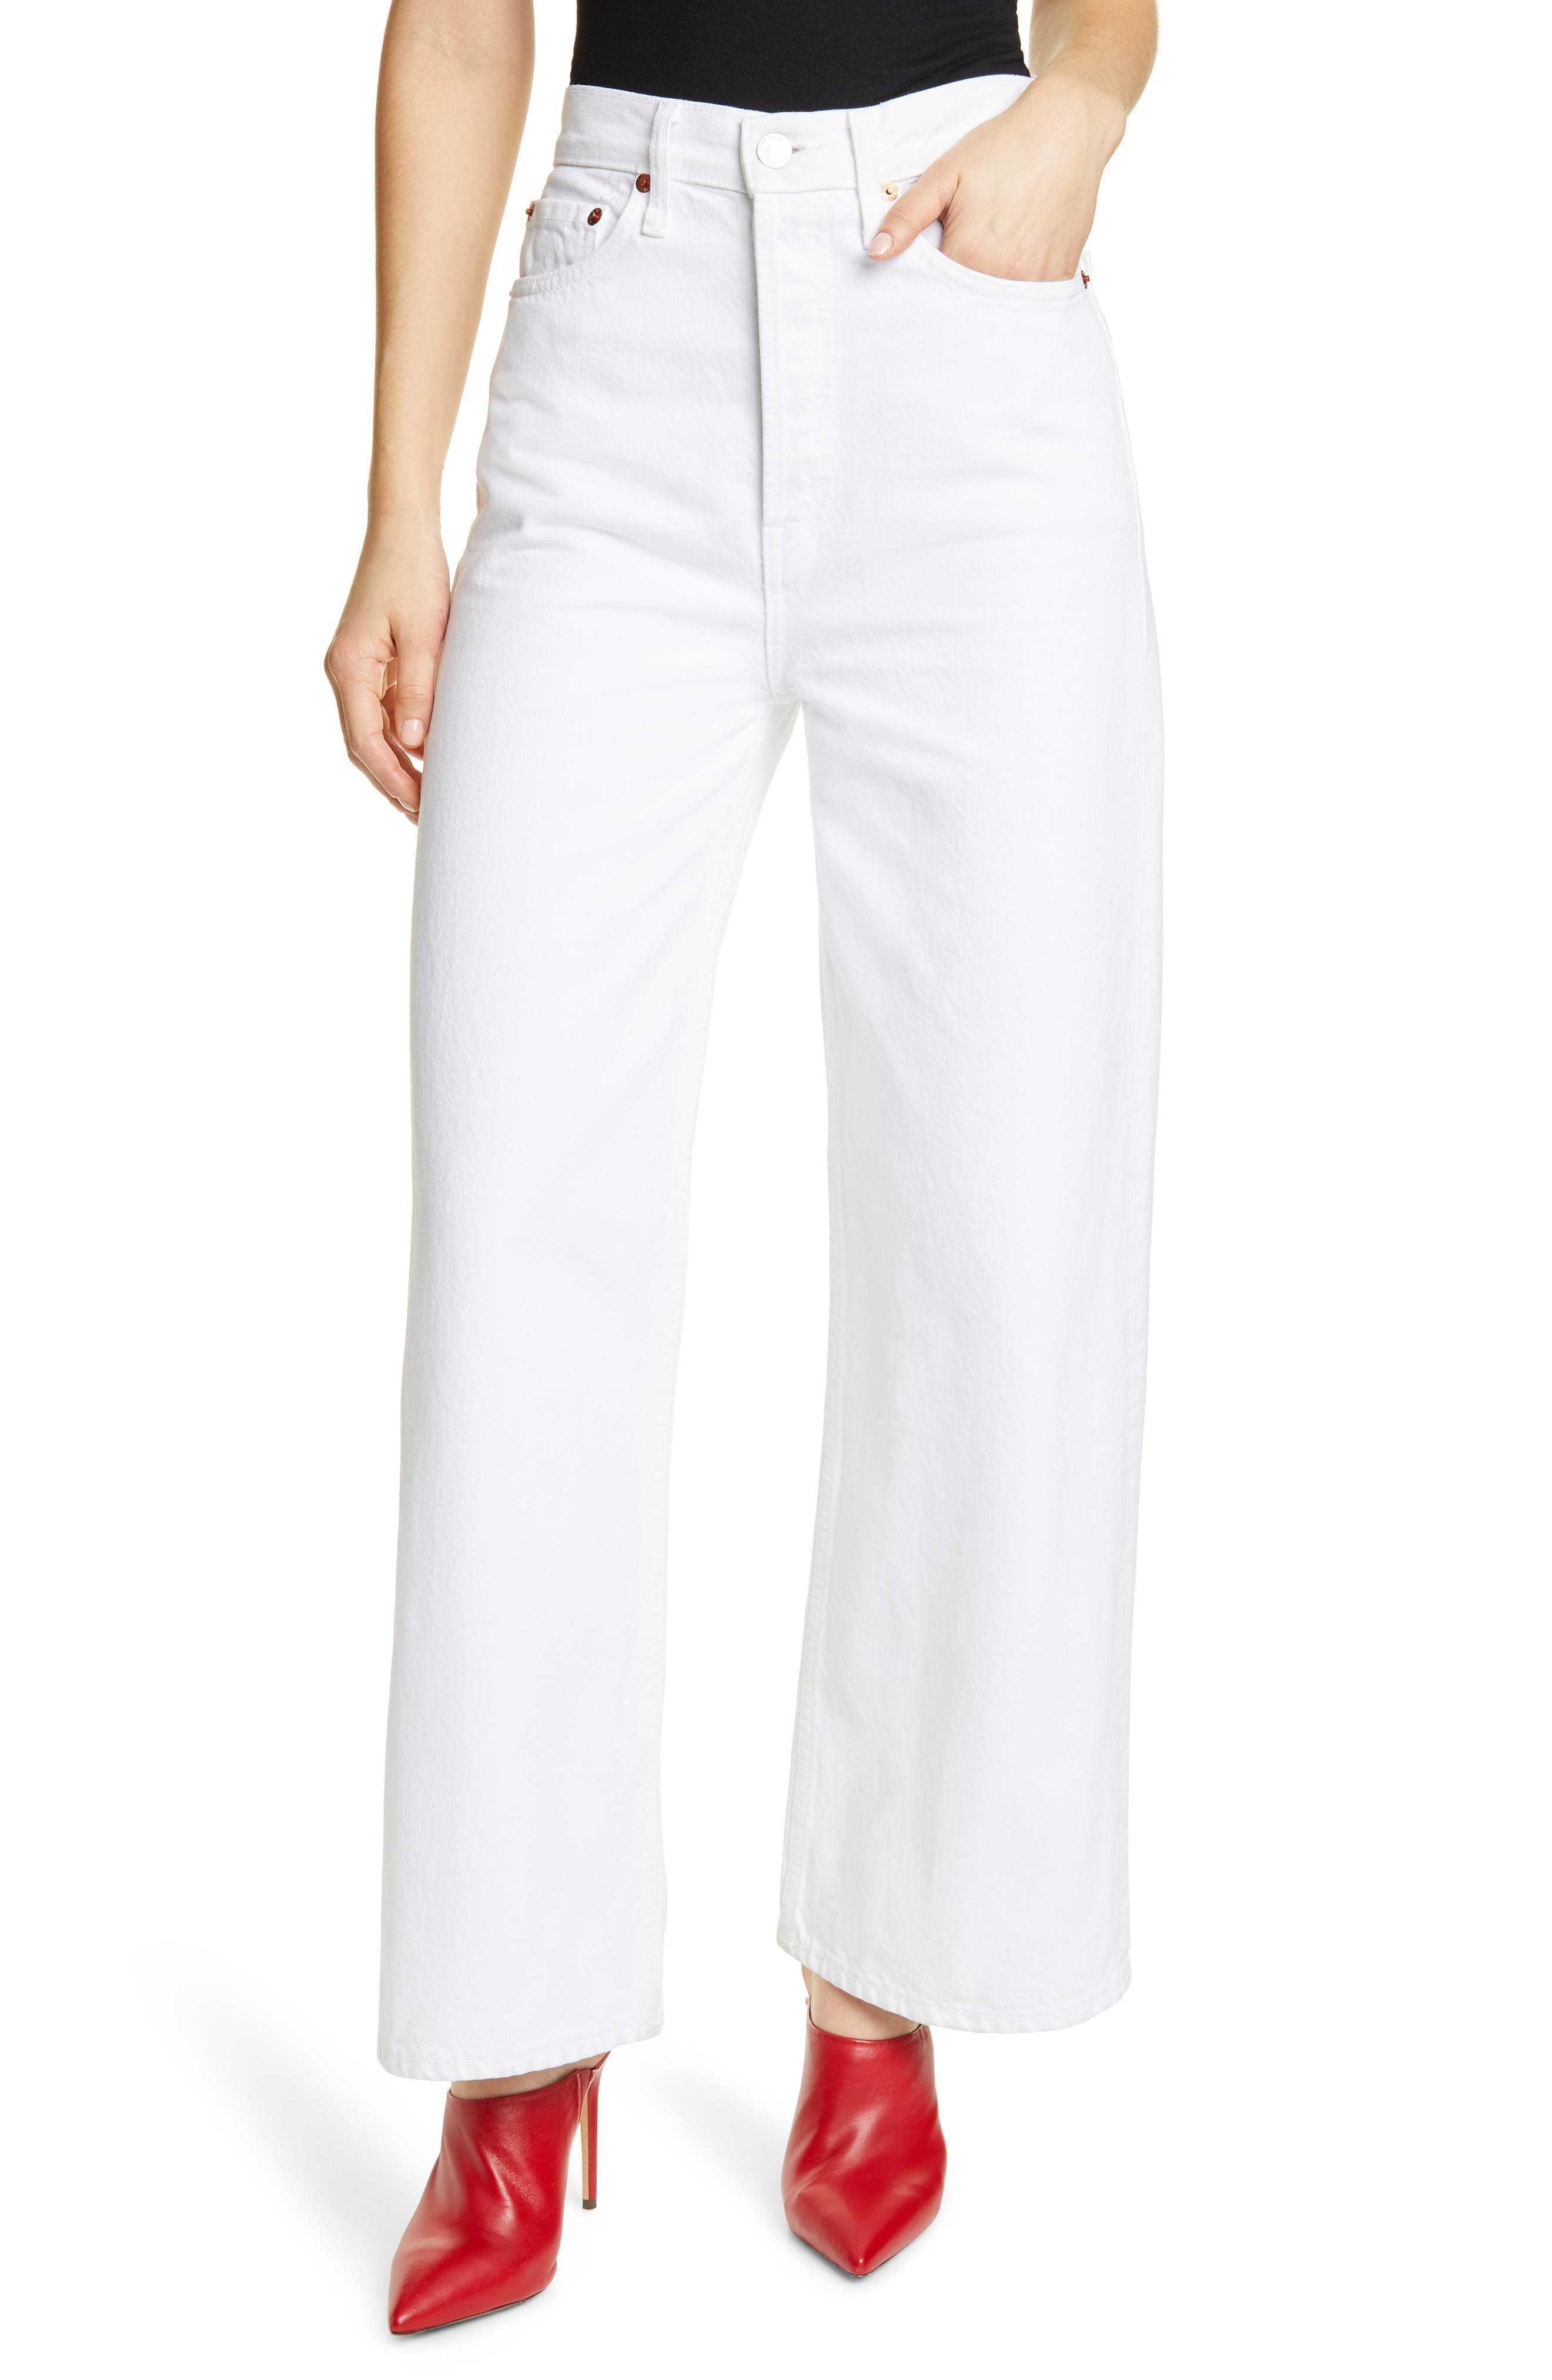 1960s Pants – Top 10 Styles for Women ReDone 60s Extreme Wide Leg Pants Size 27 - White at Nordstrom Rack $119.97 AT vintagedancer.com